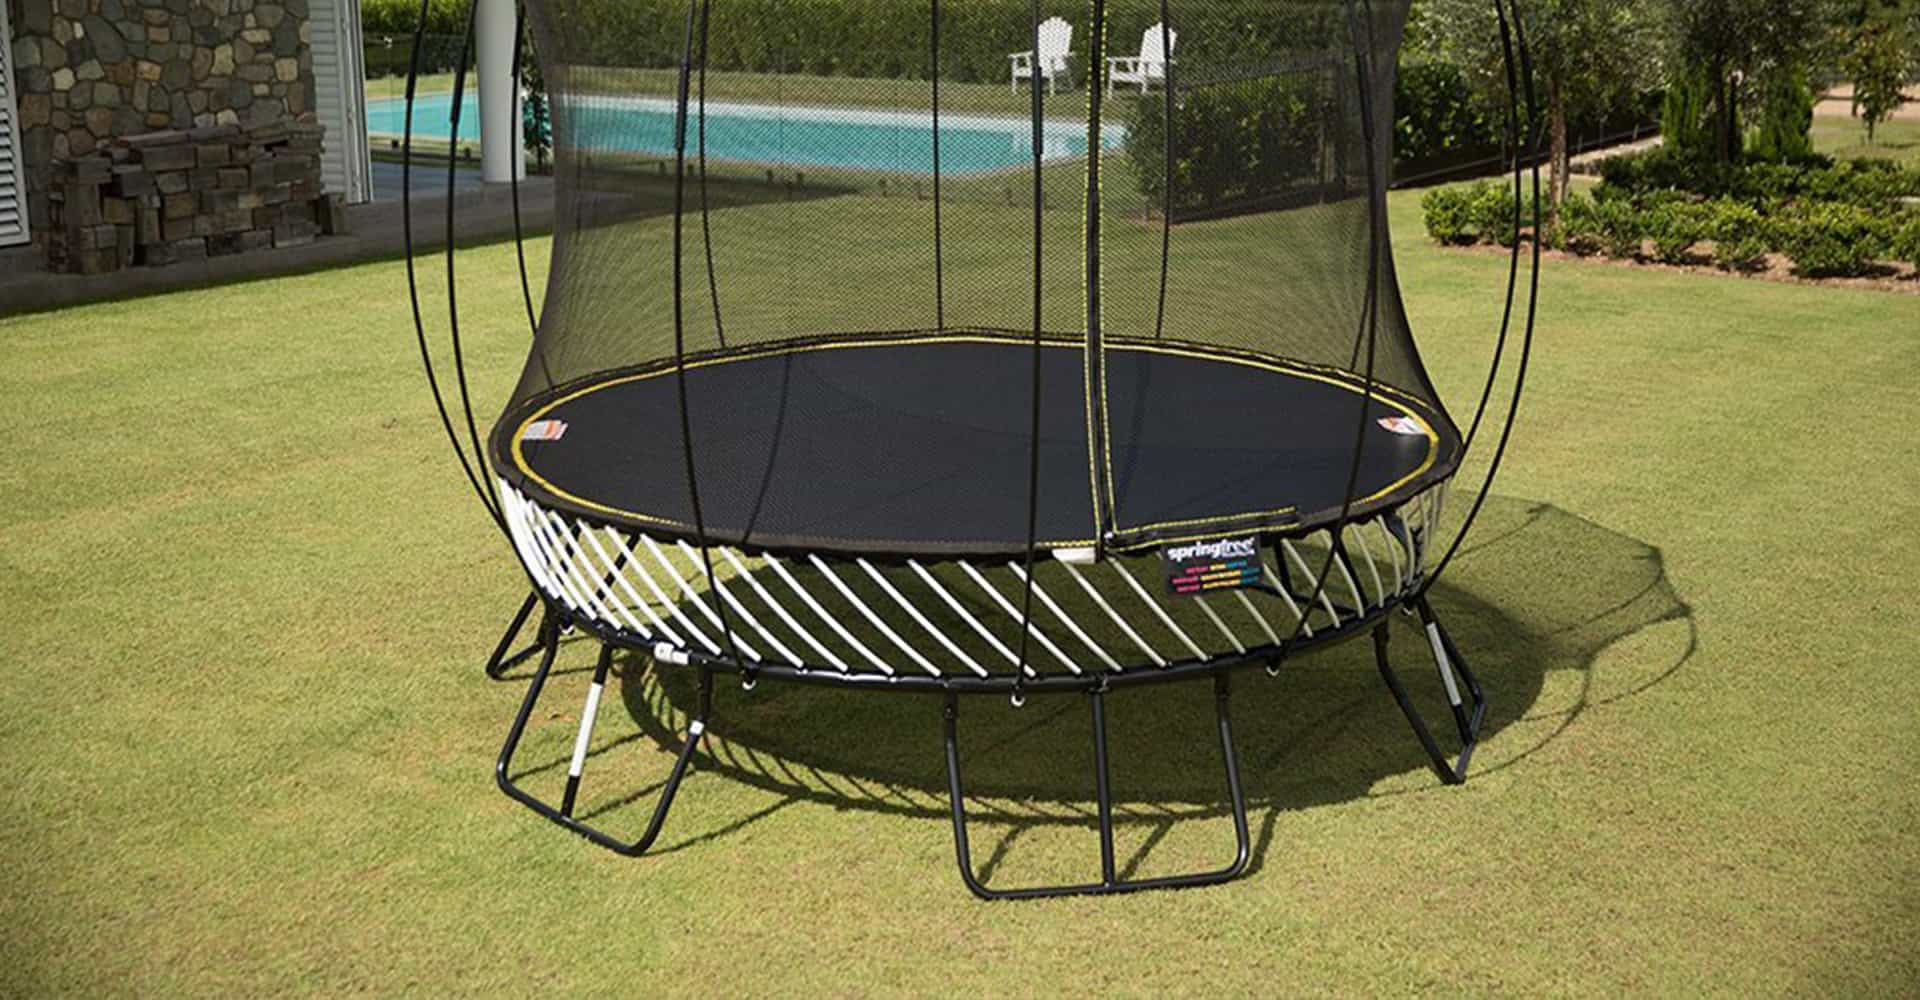 Image result for Restoring Your Garden Trampoline""